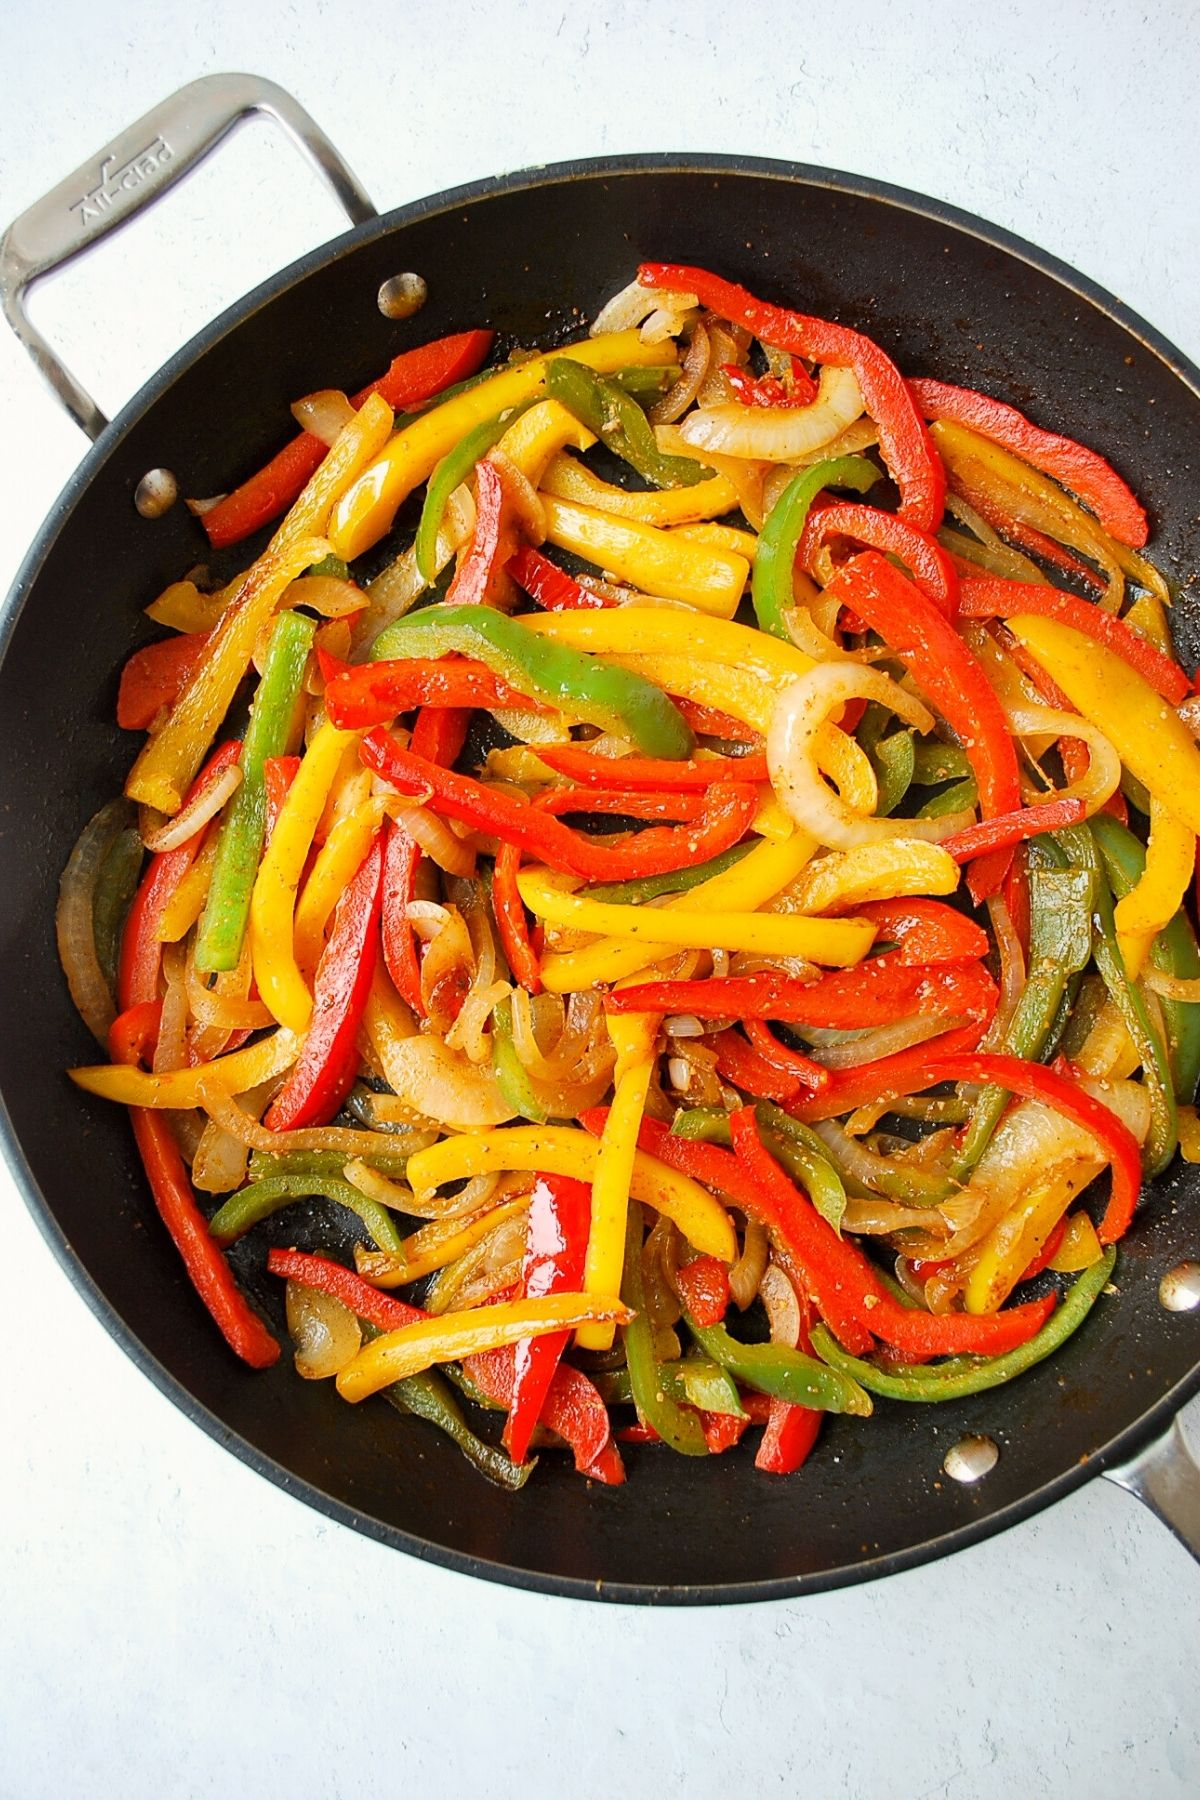 cooked peppers and onions in a skillet